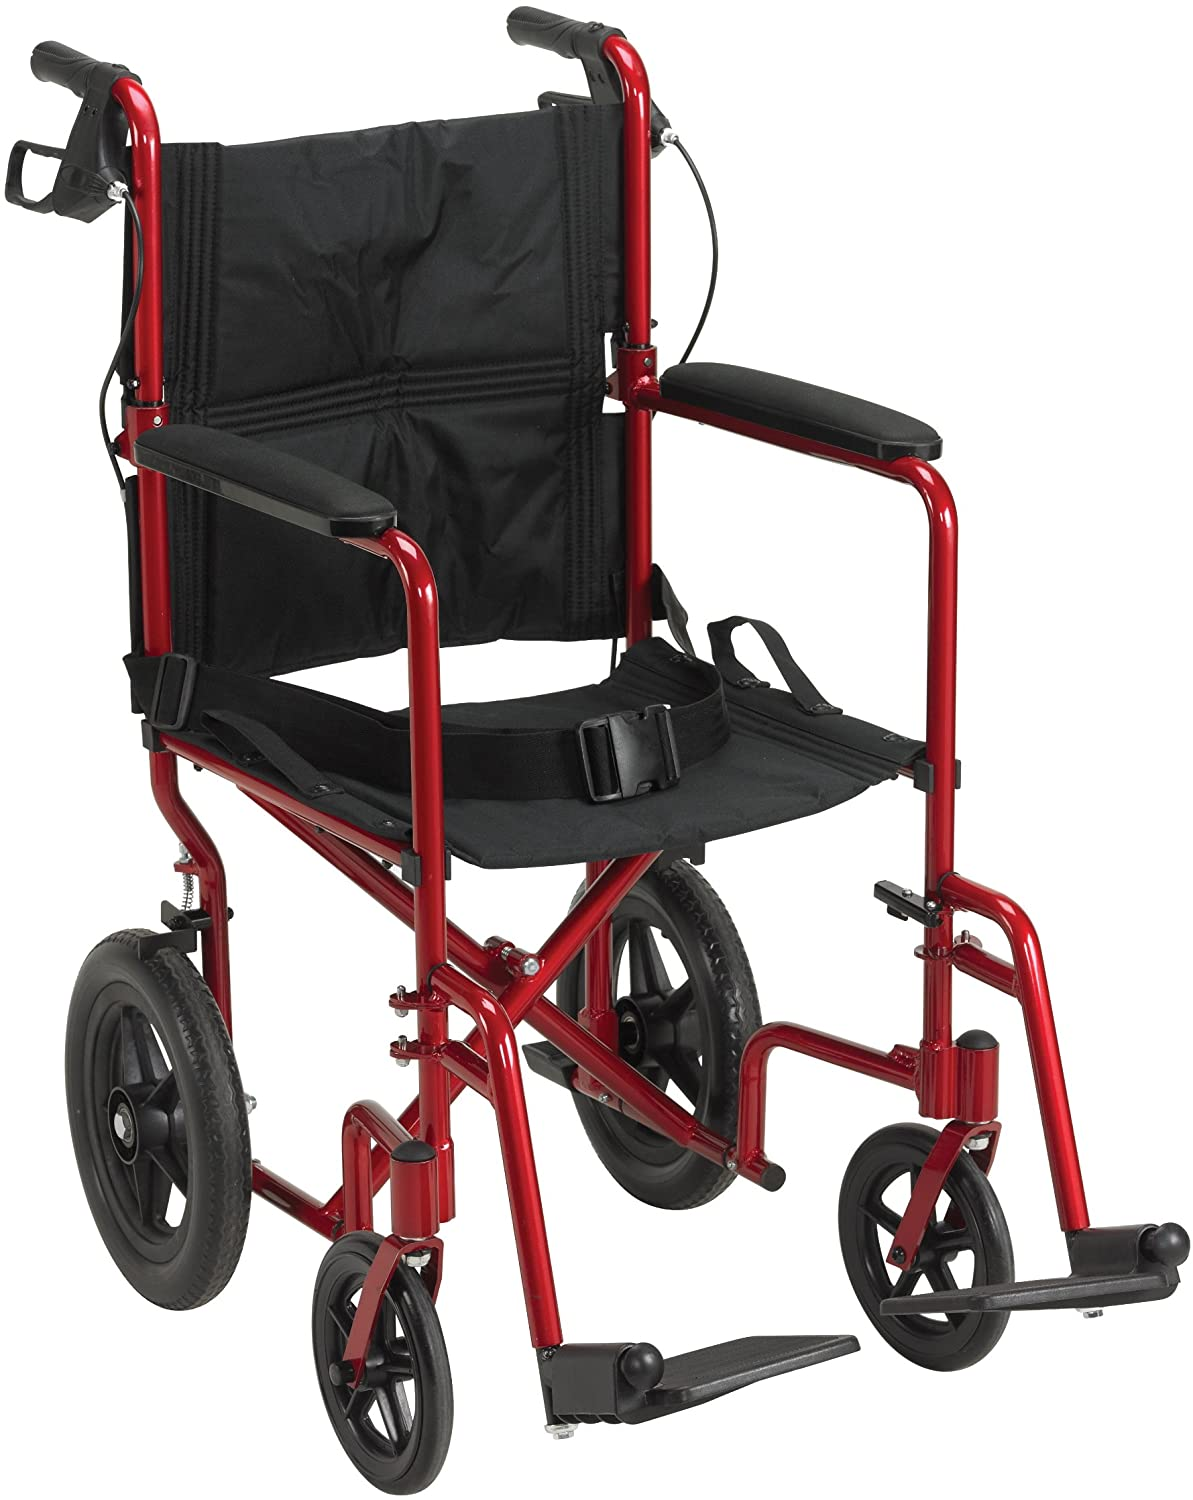 Drive Medical Lightweight Expedition Transport Wheelchair with Hand Brakes, Red 81MjkIA52OL